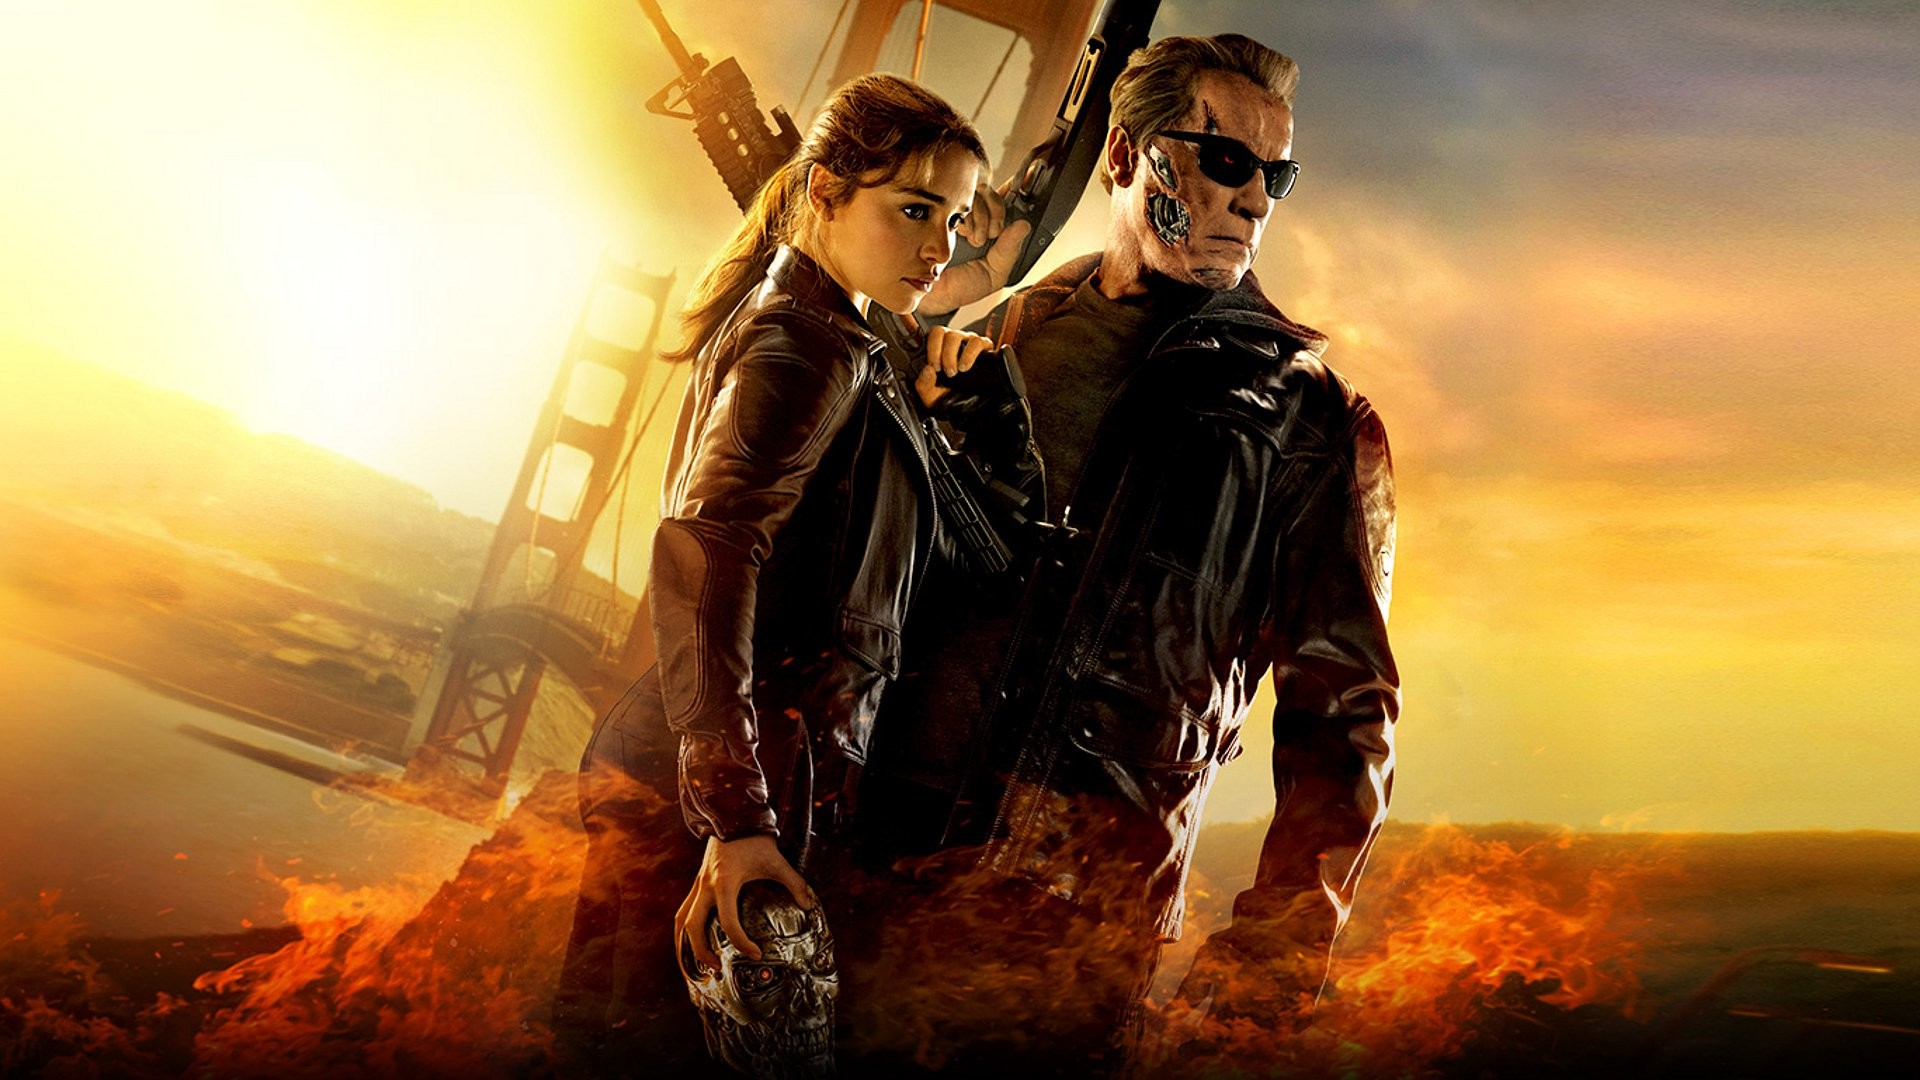 1920x1080 Terminator Genisys HD Wallpaper | Hintergrund |  | ID:765158 -  Wallpaper Abyss